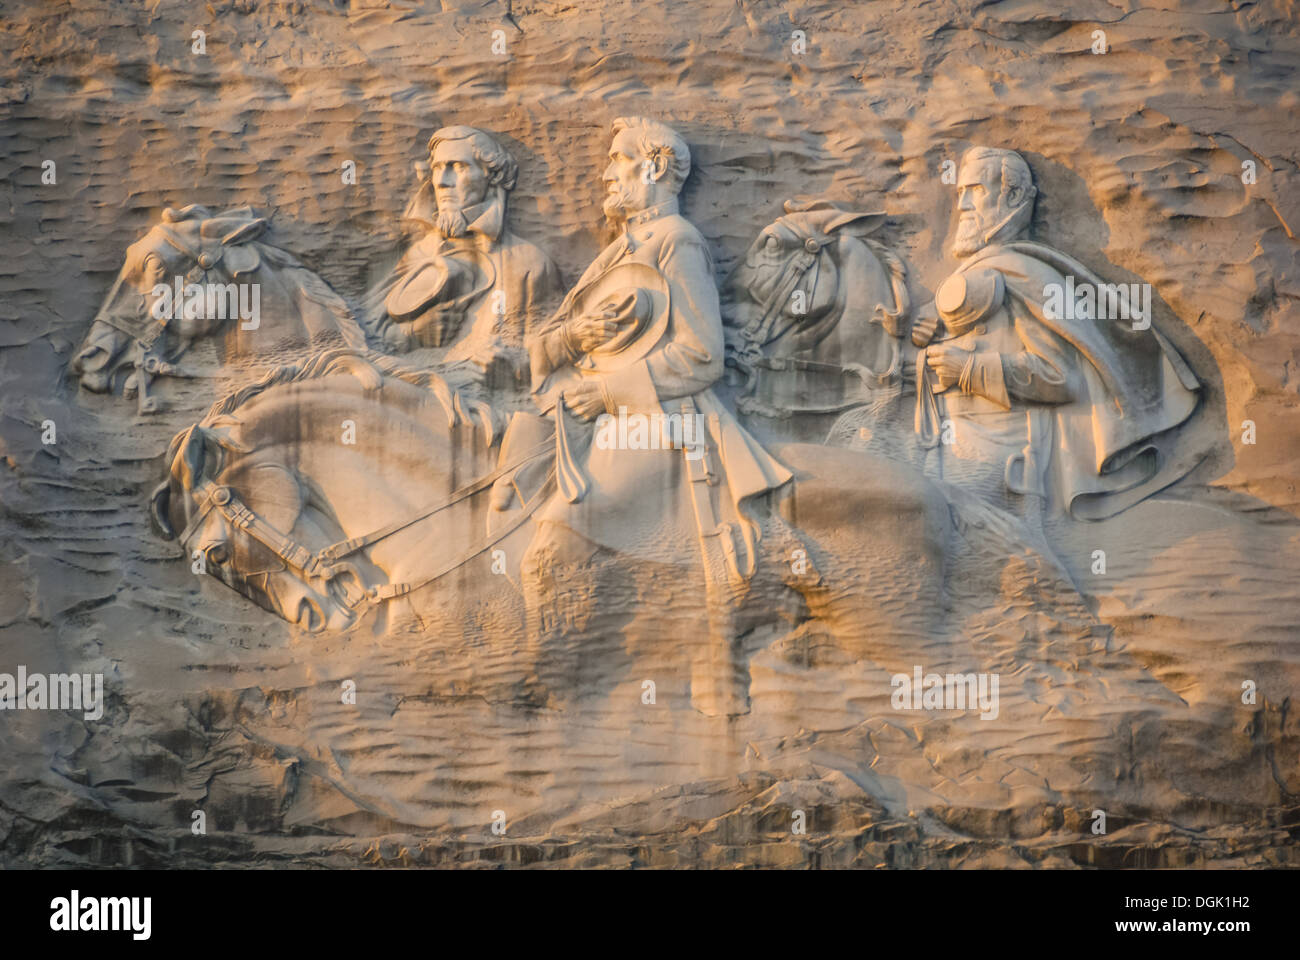 Stone mountain park carving of confederate leaders robert